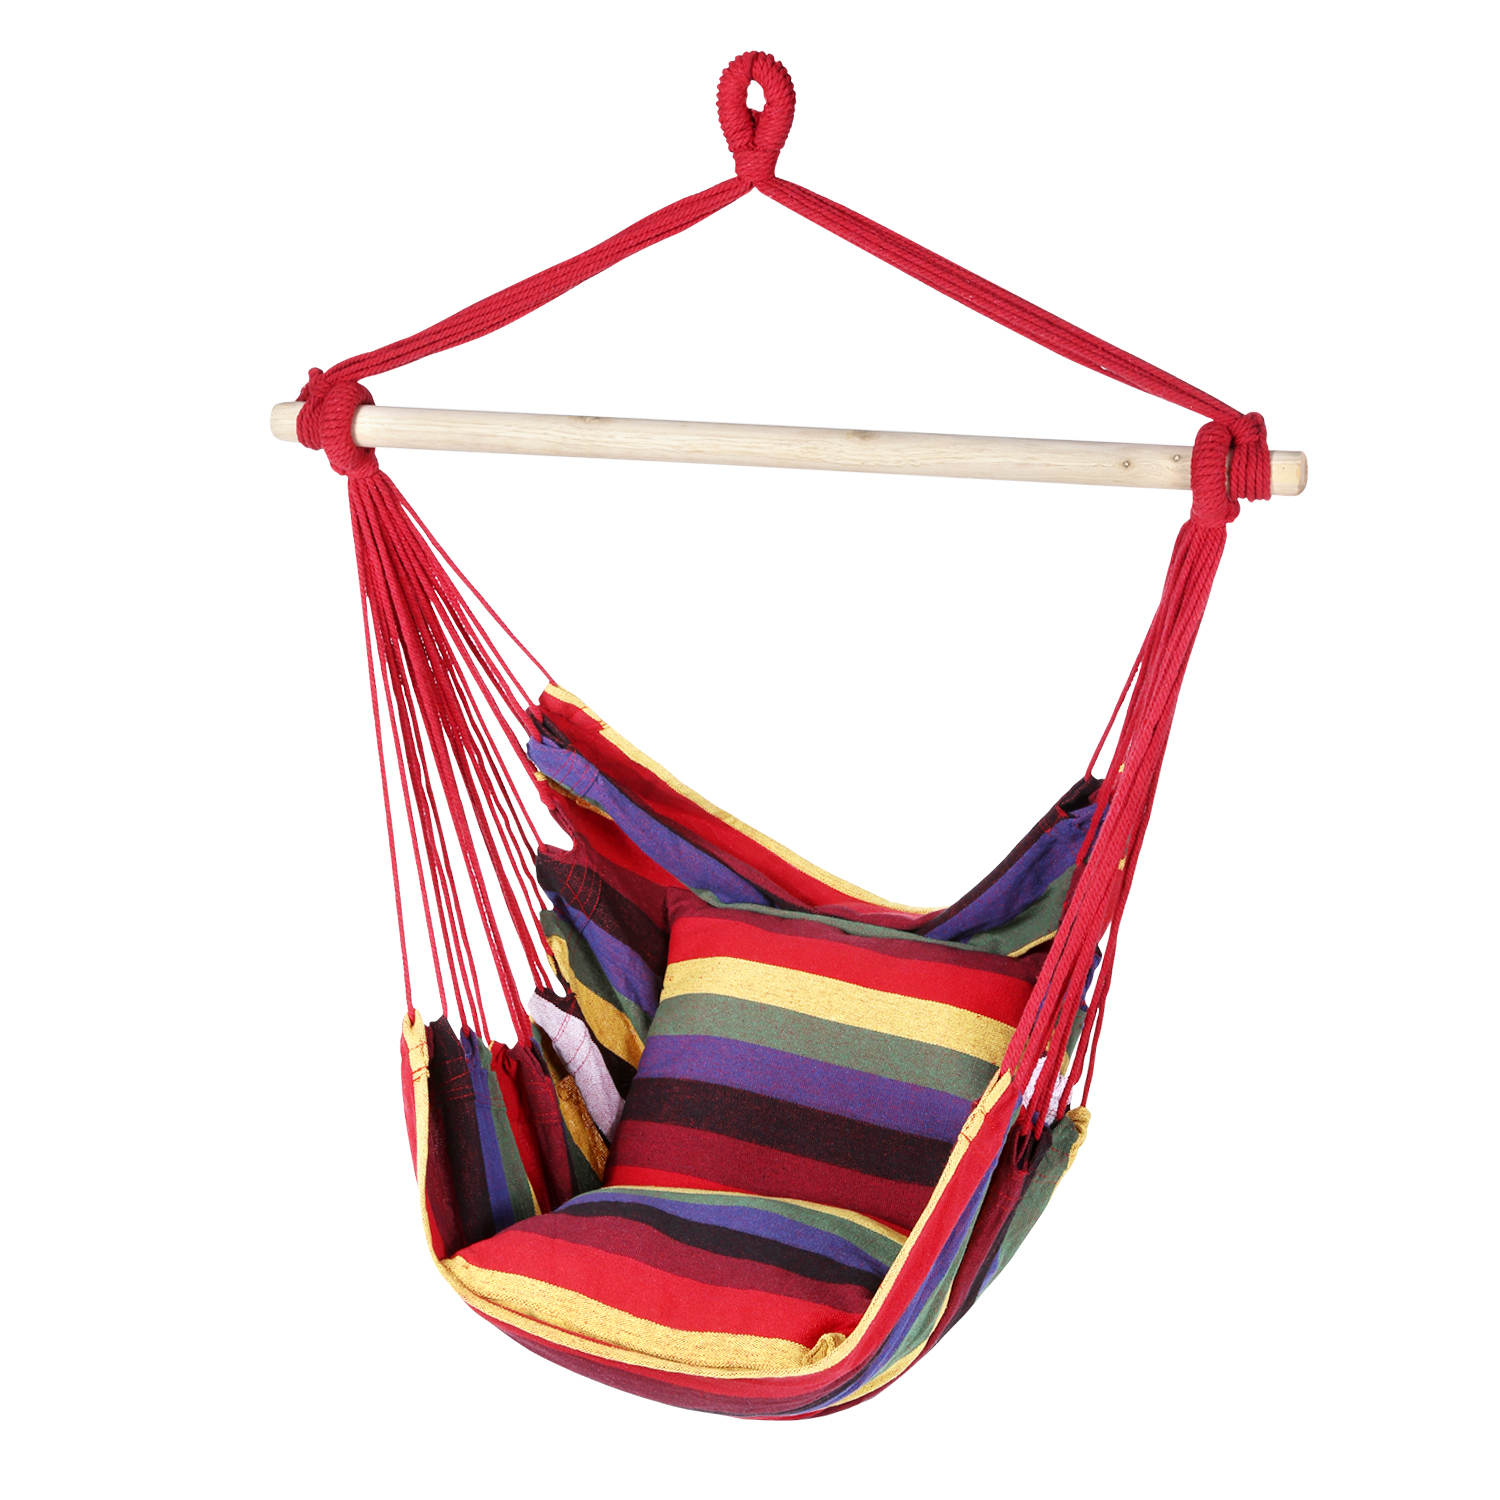 nkeeo Red Hanging Chair Fabric Outdoor Camping and Hiking - Cherry Red Japan